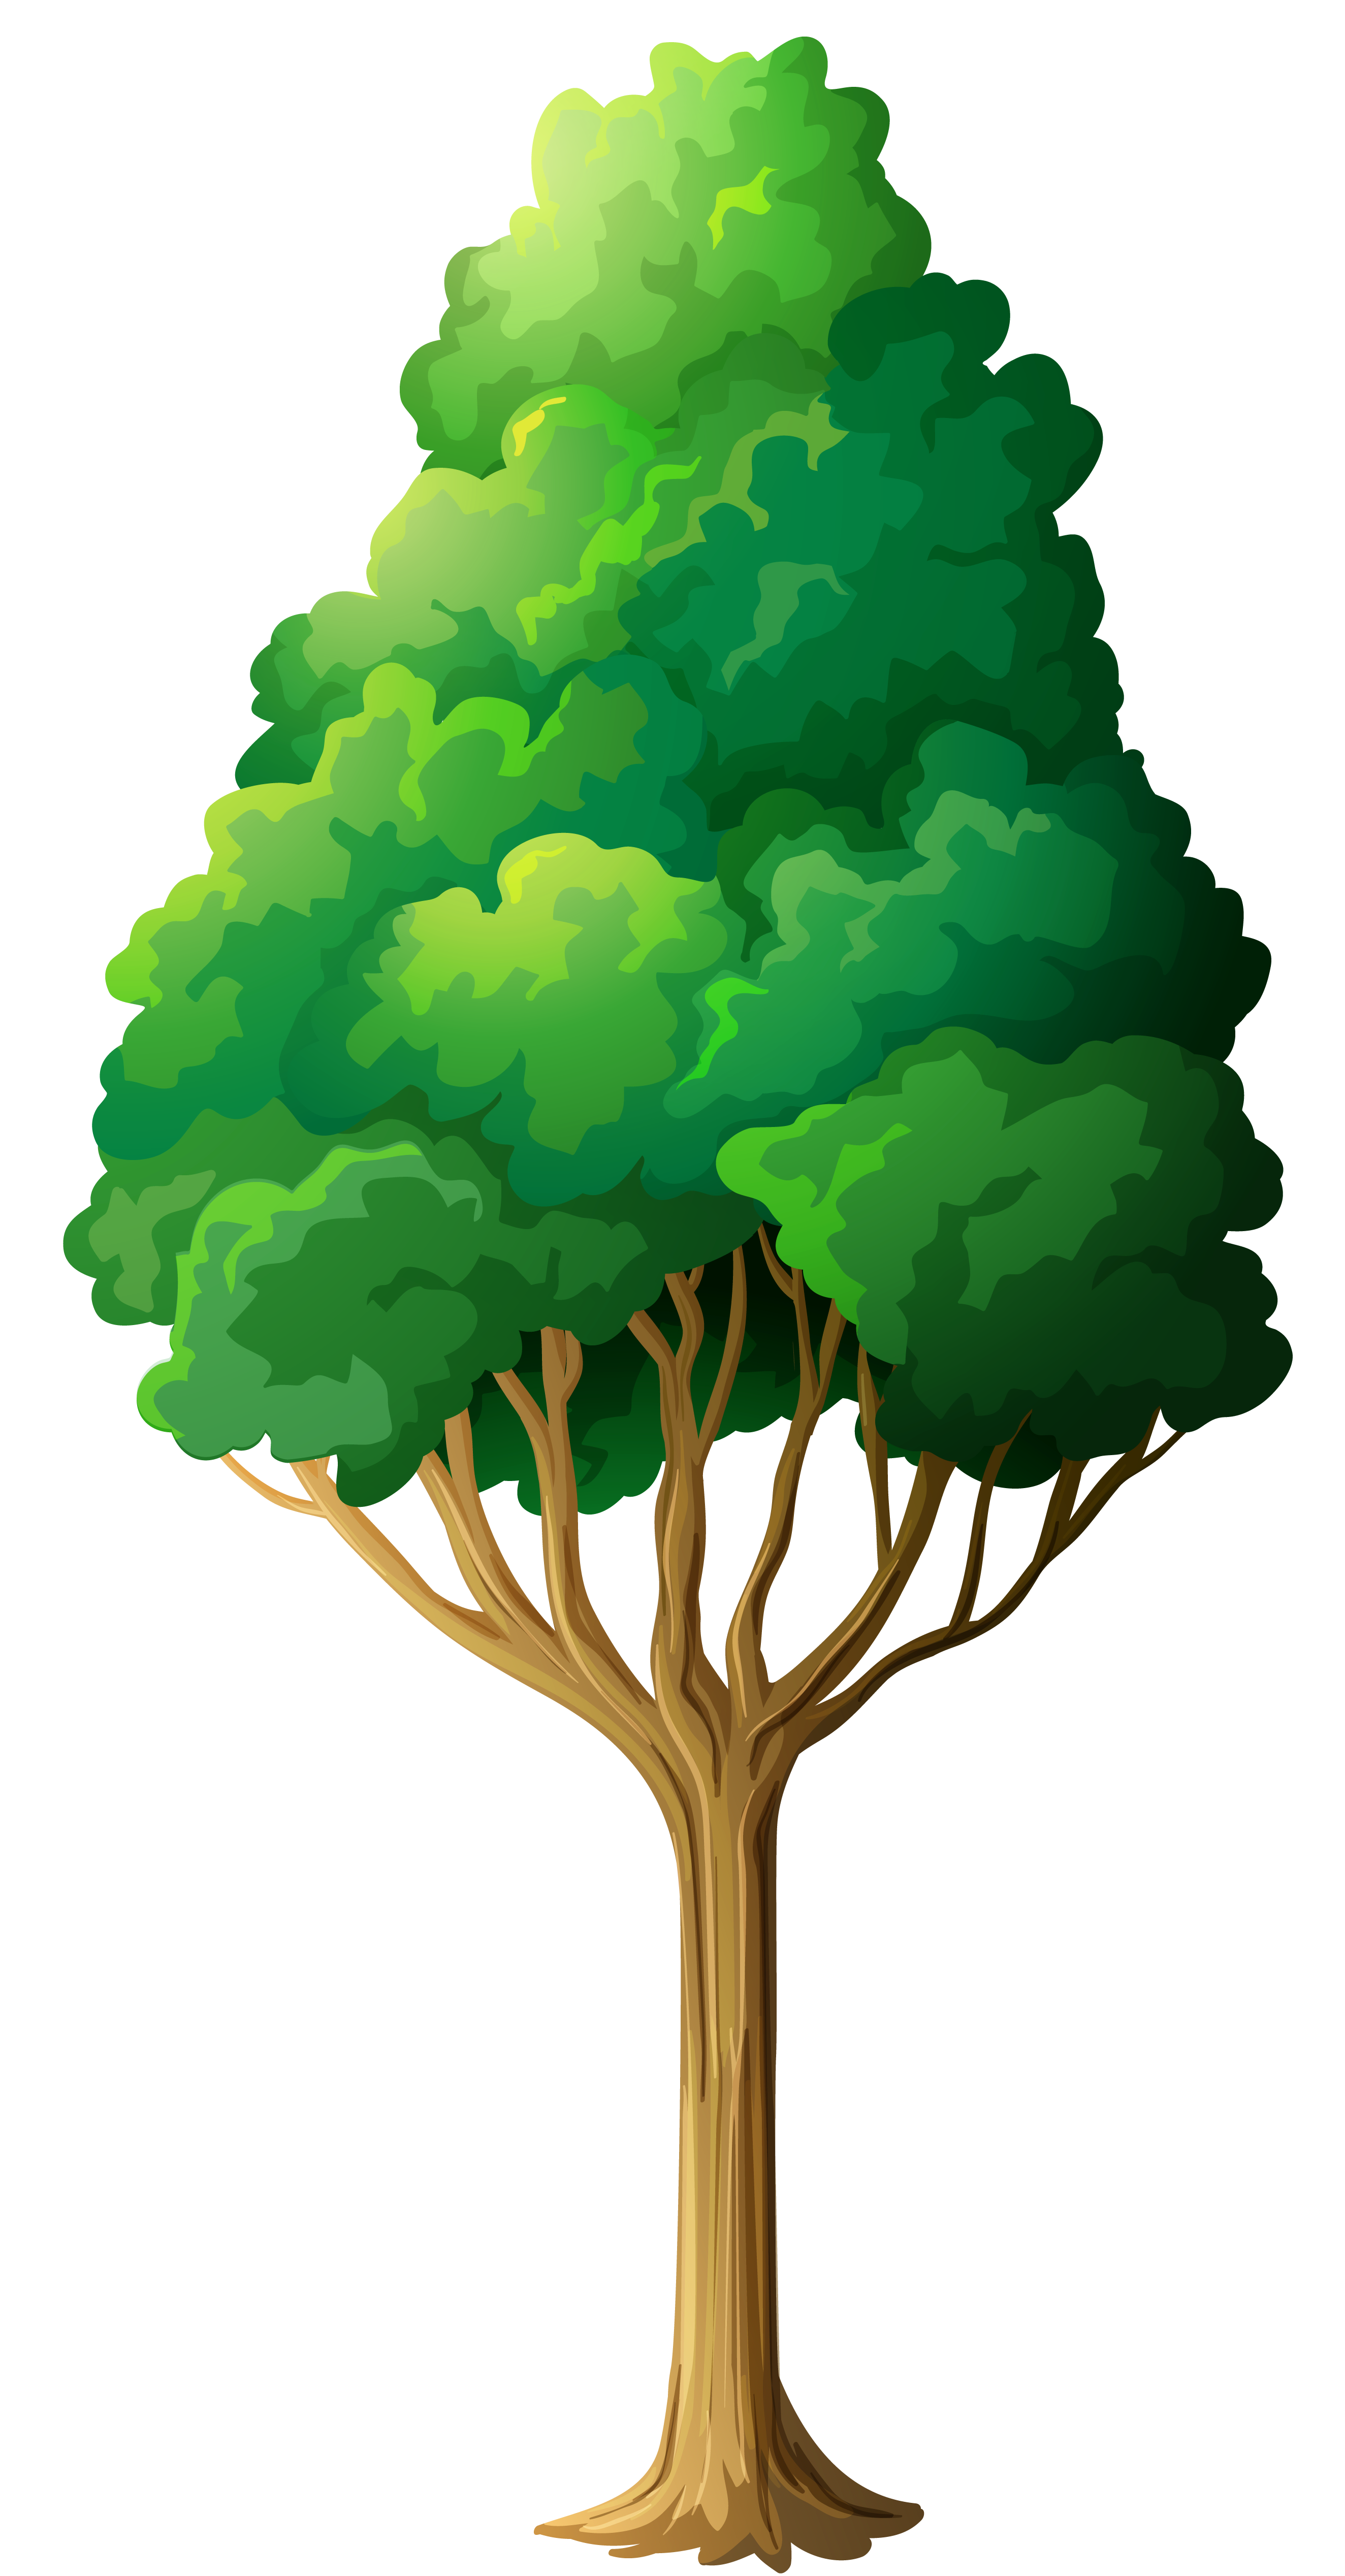 Cartoon trees png. Green tree clipart gallery